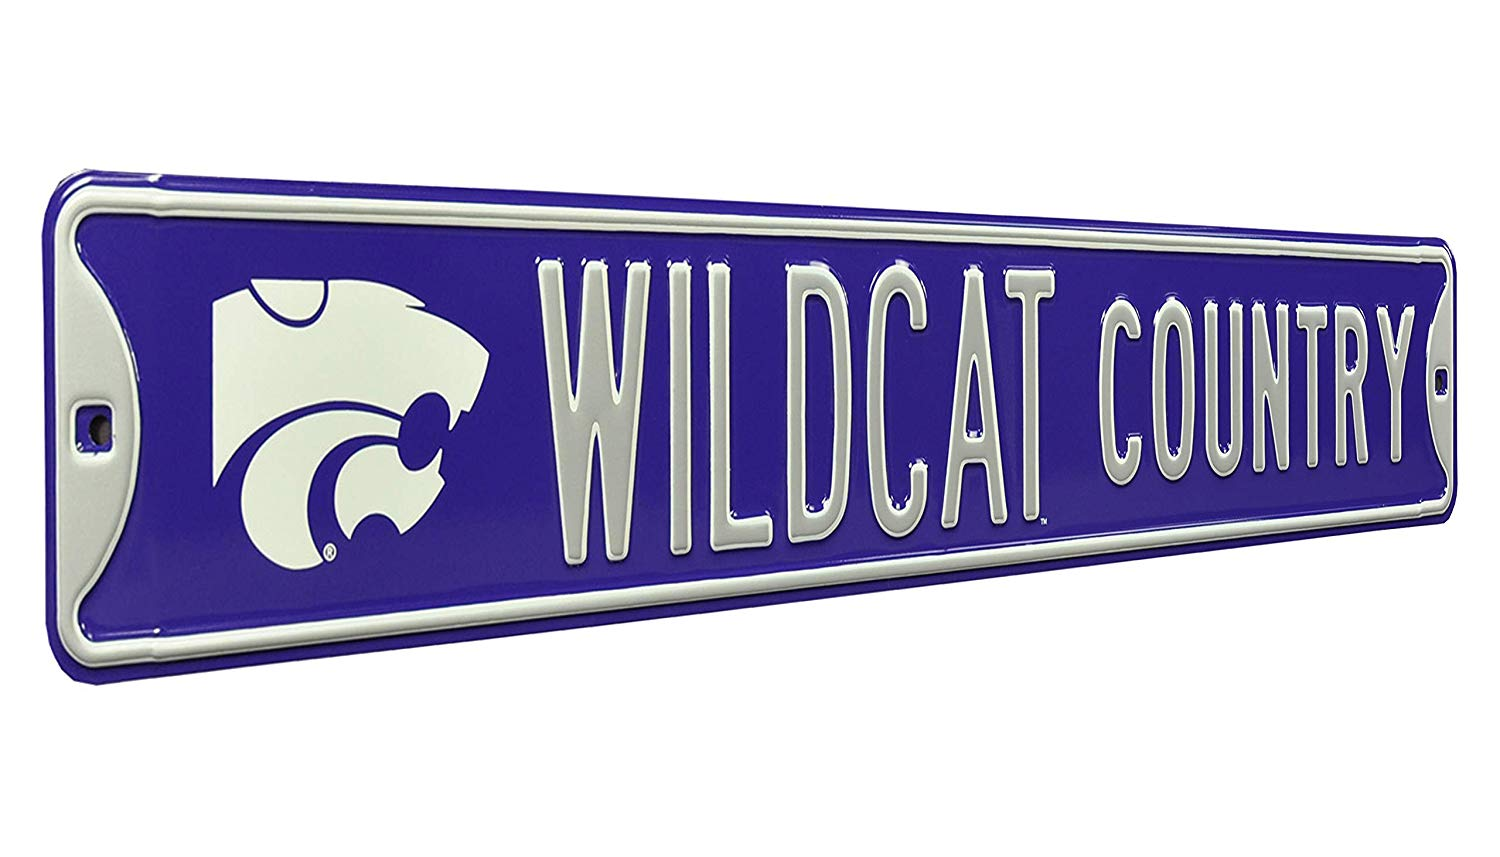 Kansas State Wildcats 'Wildcat Country' Street Sign - 2007928